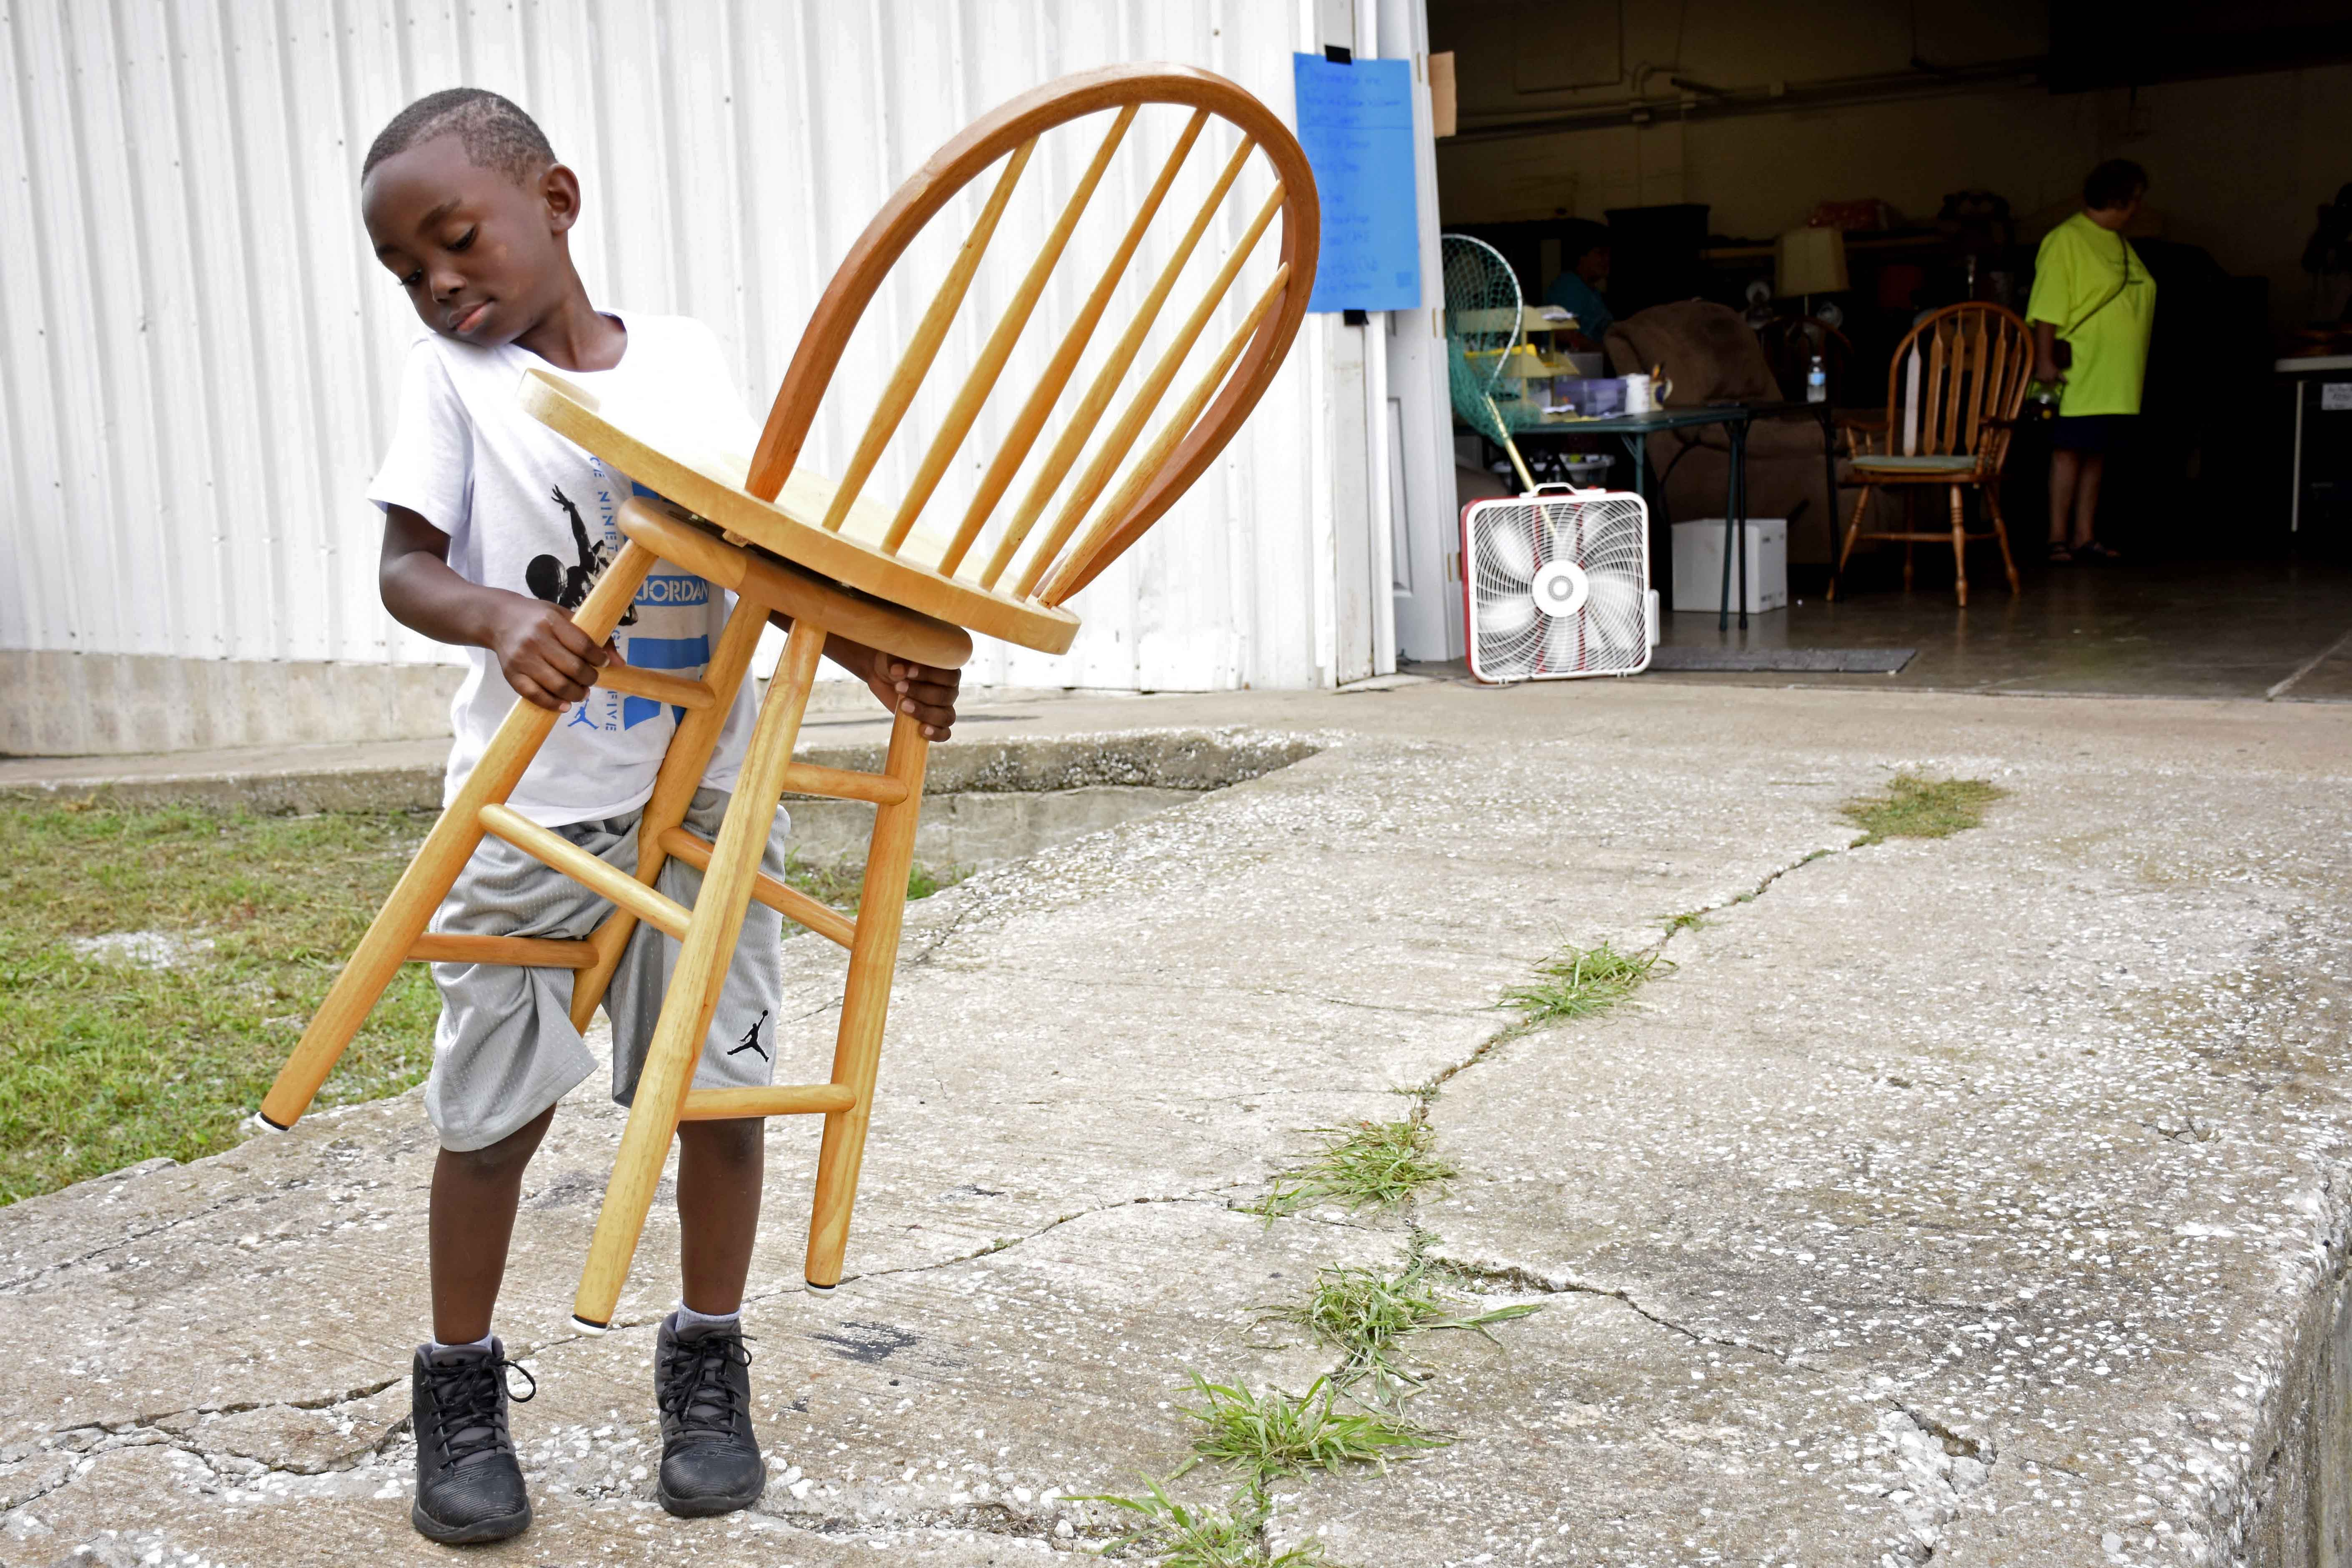 Titan Hills, 6, holds a chair at the Rotary Rotation Resale on Thursday, Aug. 18, 2016, in Carbondale. Hills carried the chair to assist his mother, Tanasha Rodgers. (Athena Chrysanthou | DailyEgyptian.com)